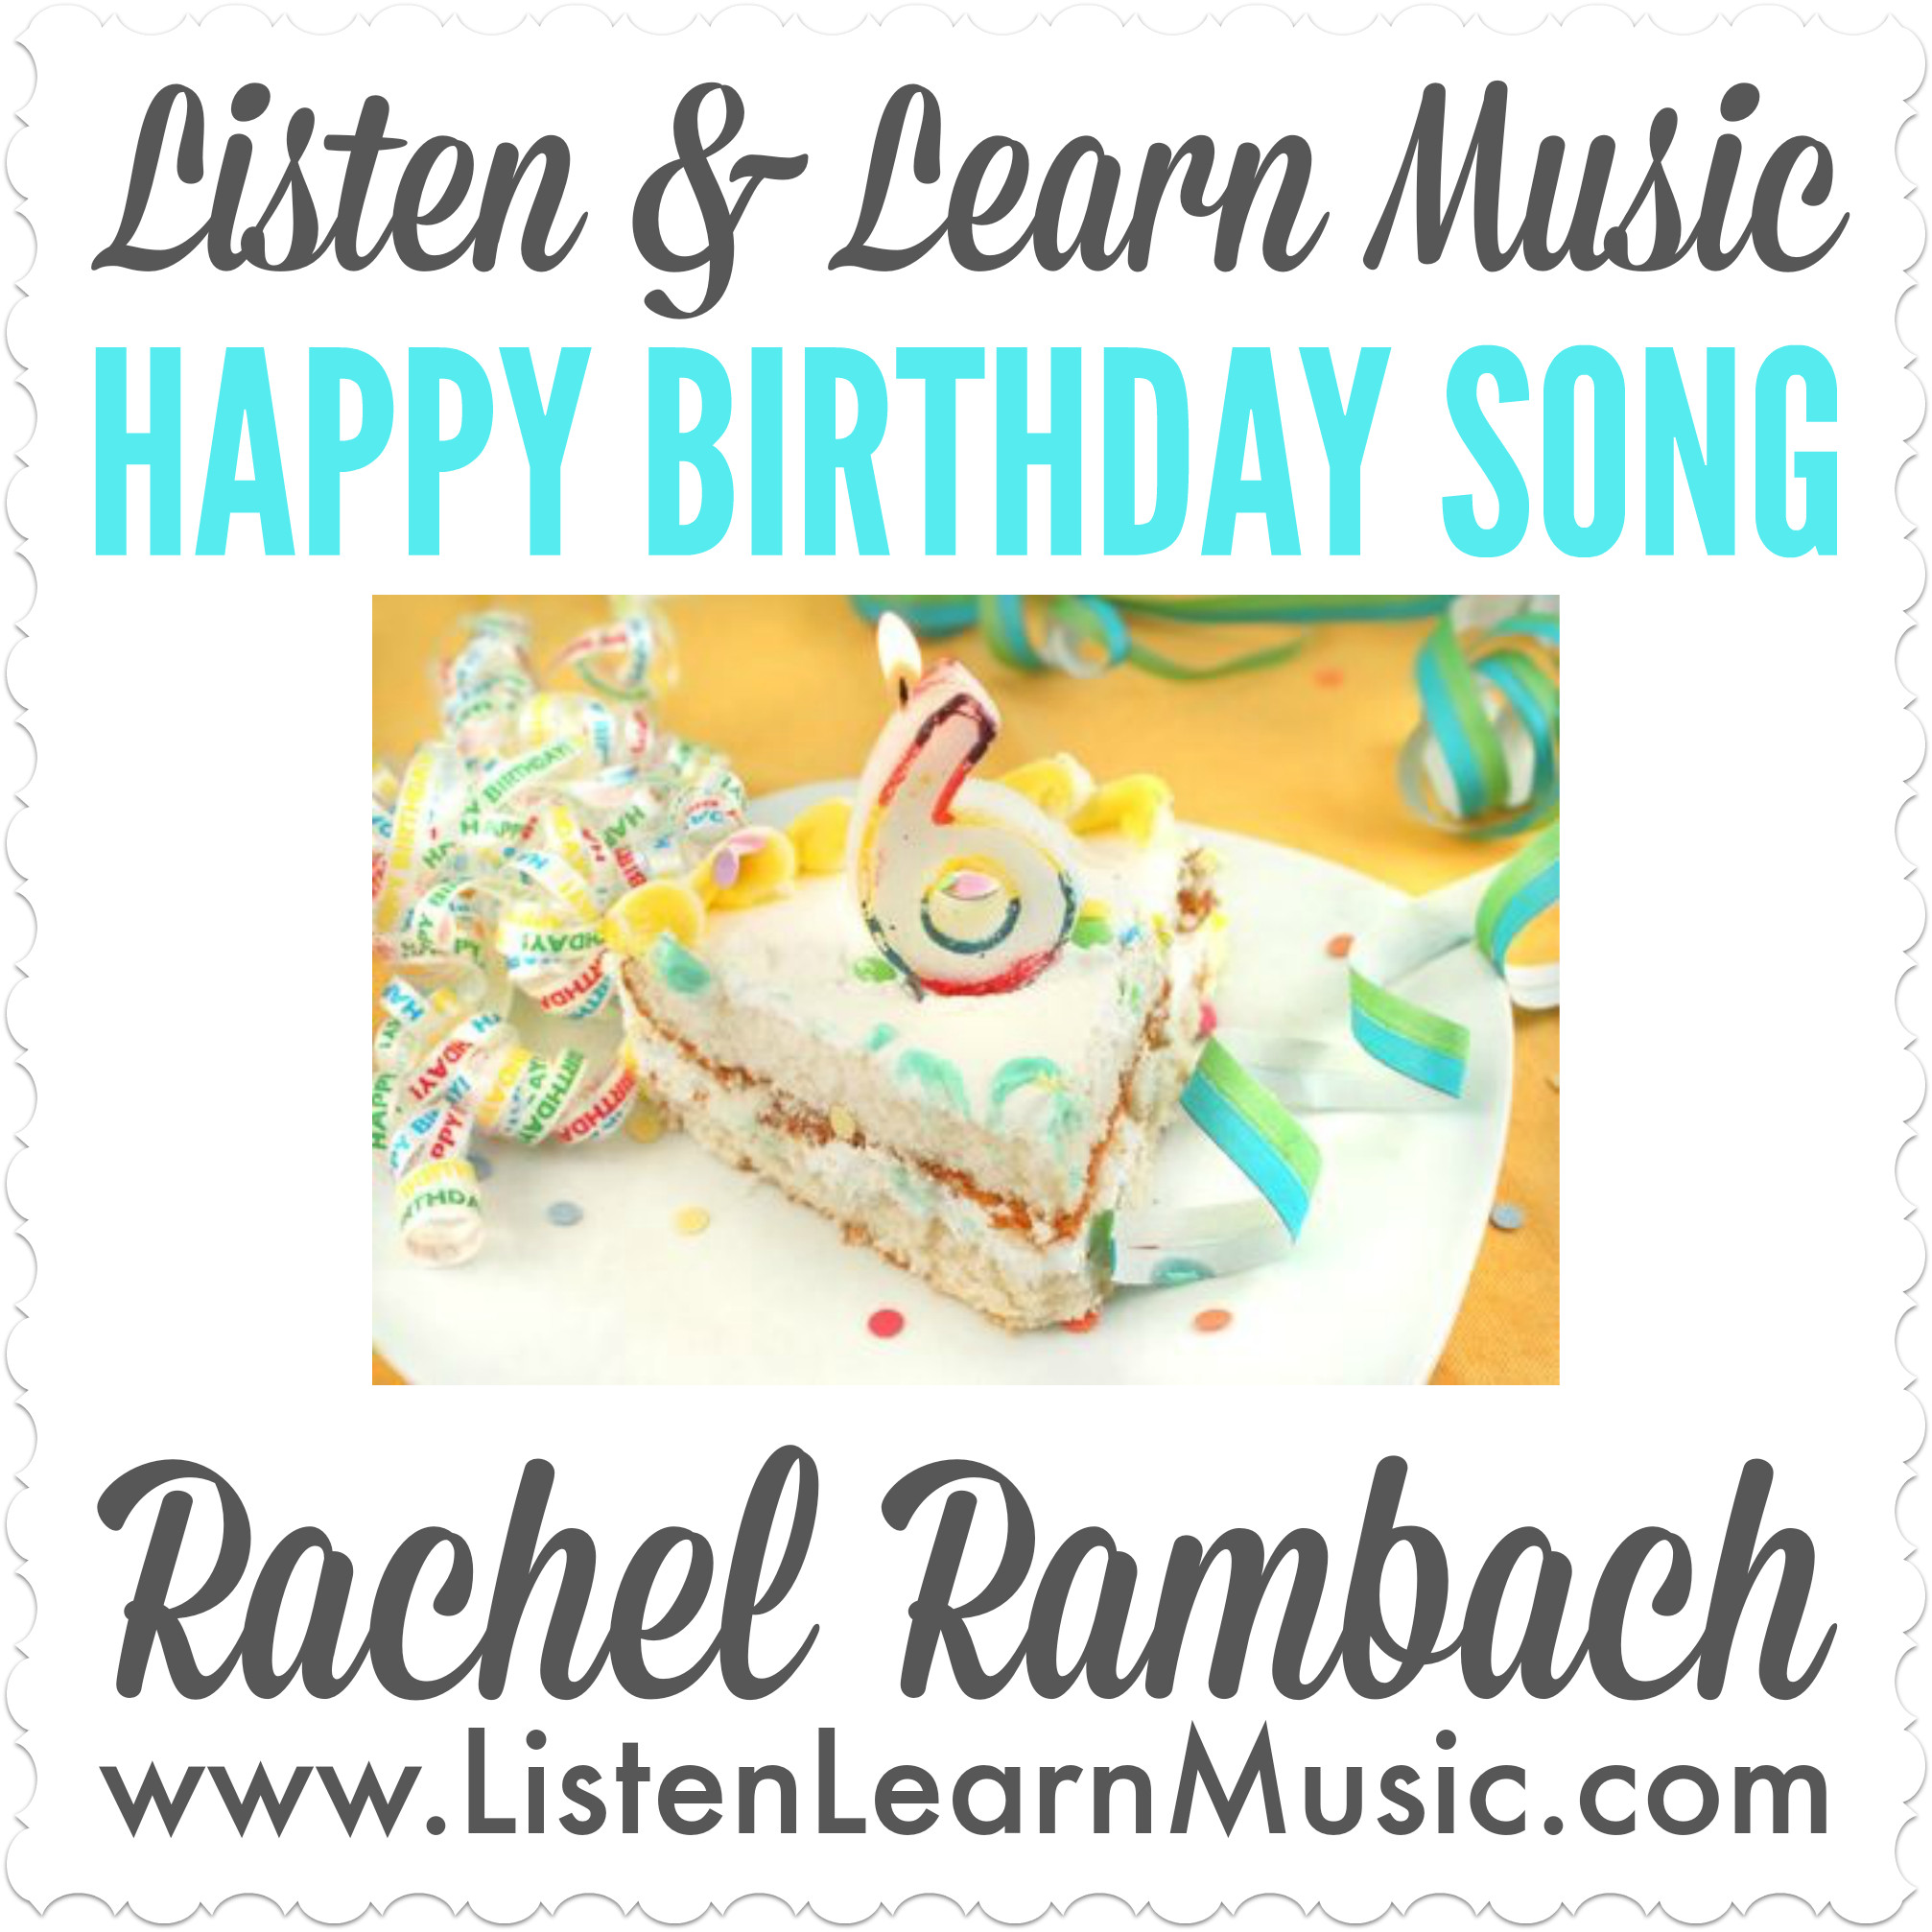 The Happy Birthday Song Listen Learn Music